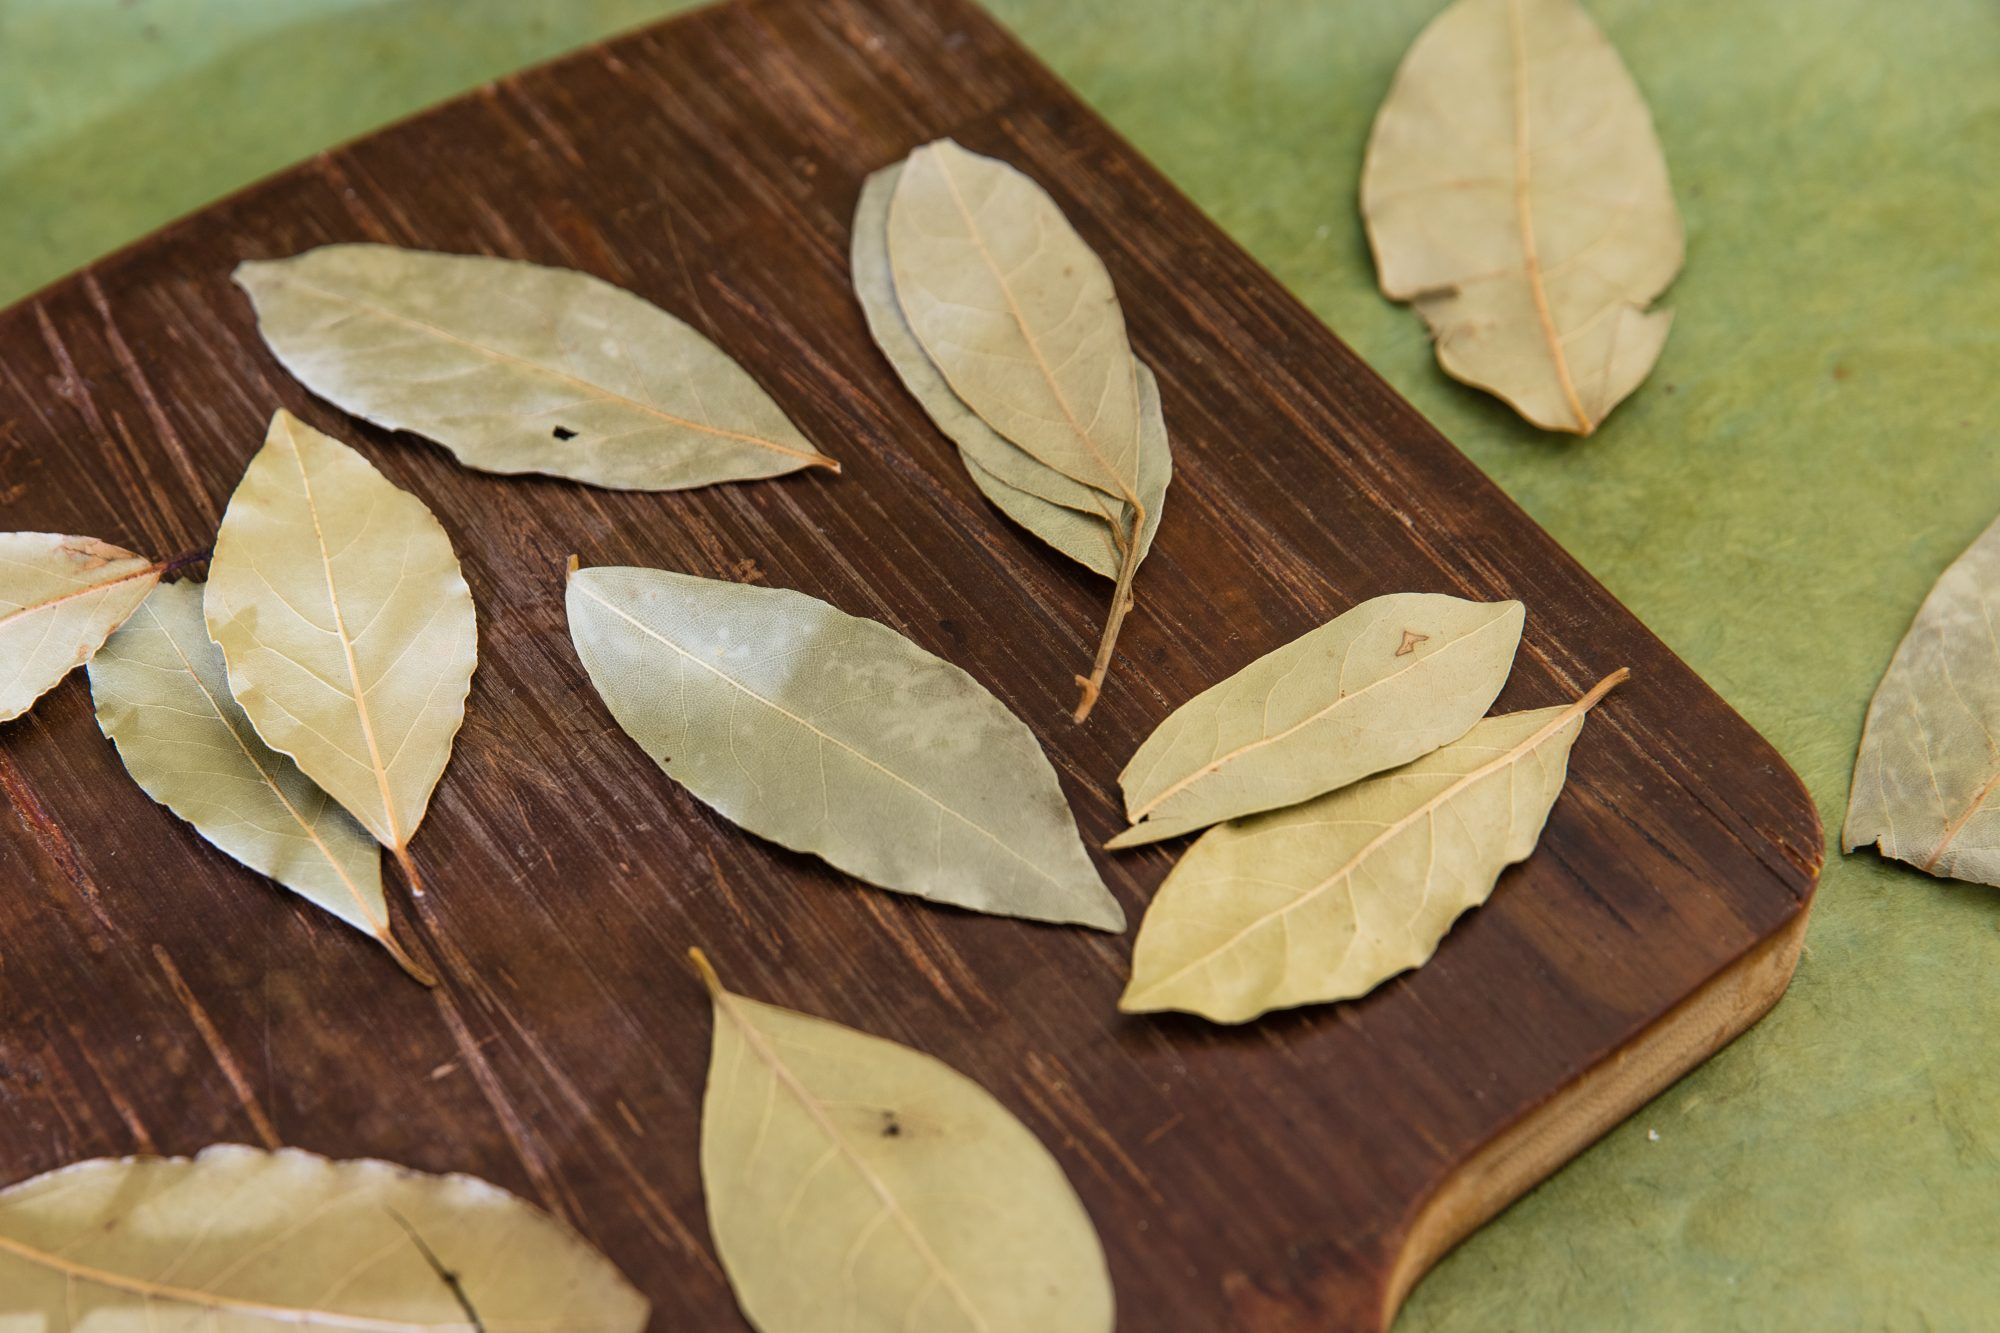 Dried Bay Leaves Getty 1/27/20